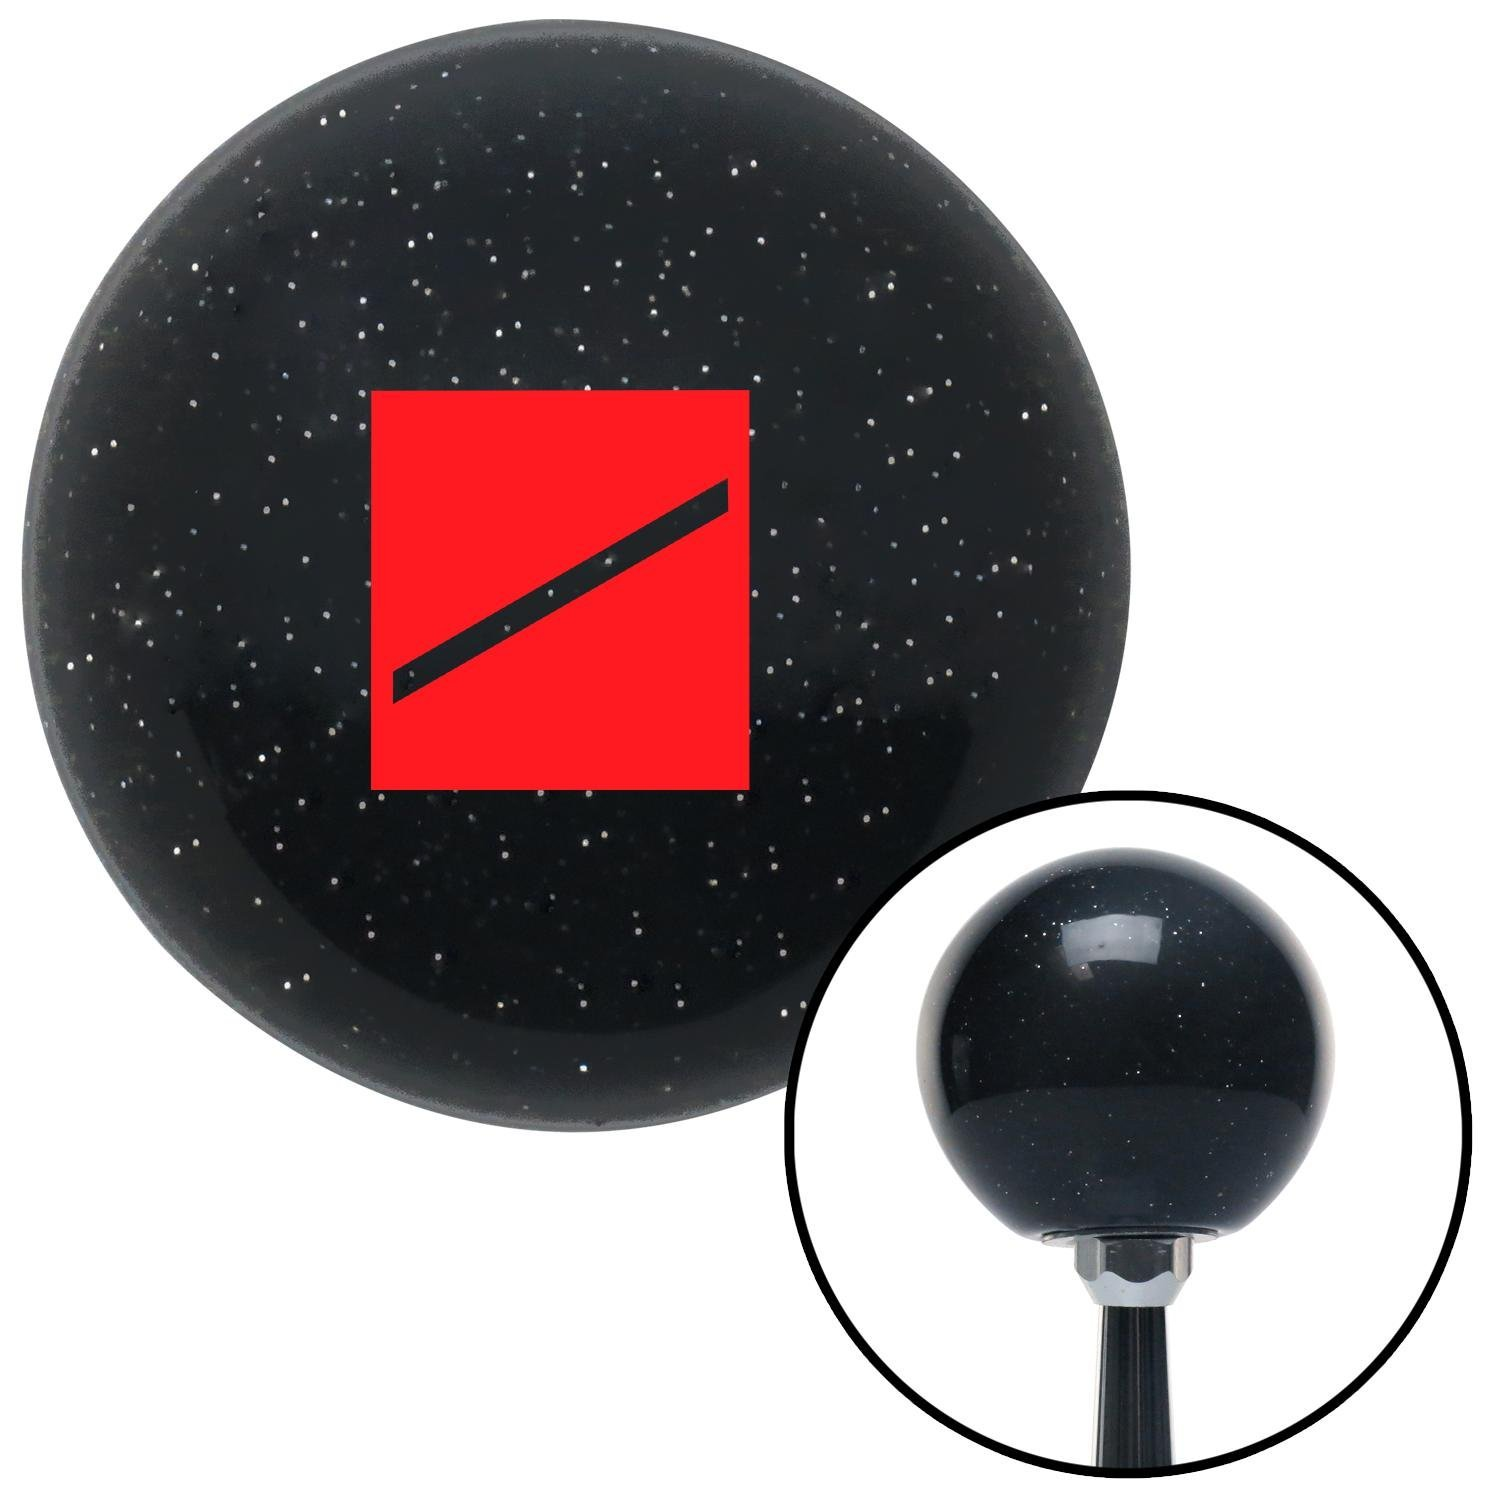 American Shifter 72627 Black Metal Flake Shift Knob with M16 x 1.5 Insert Red Seaman Recruit